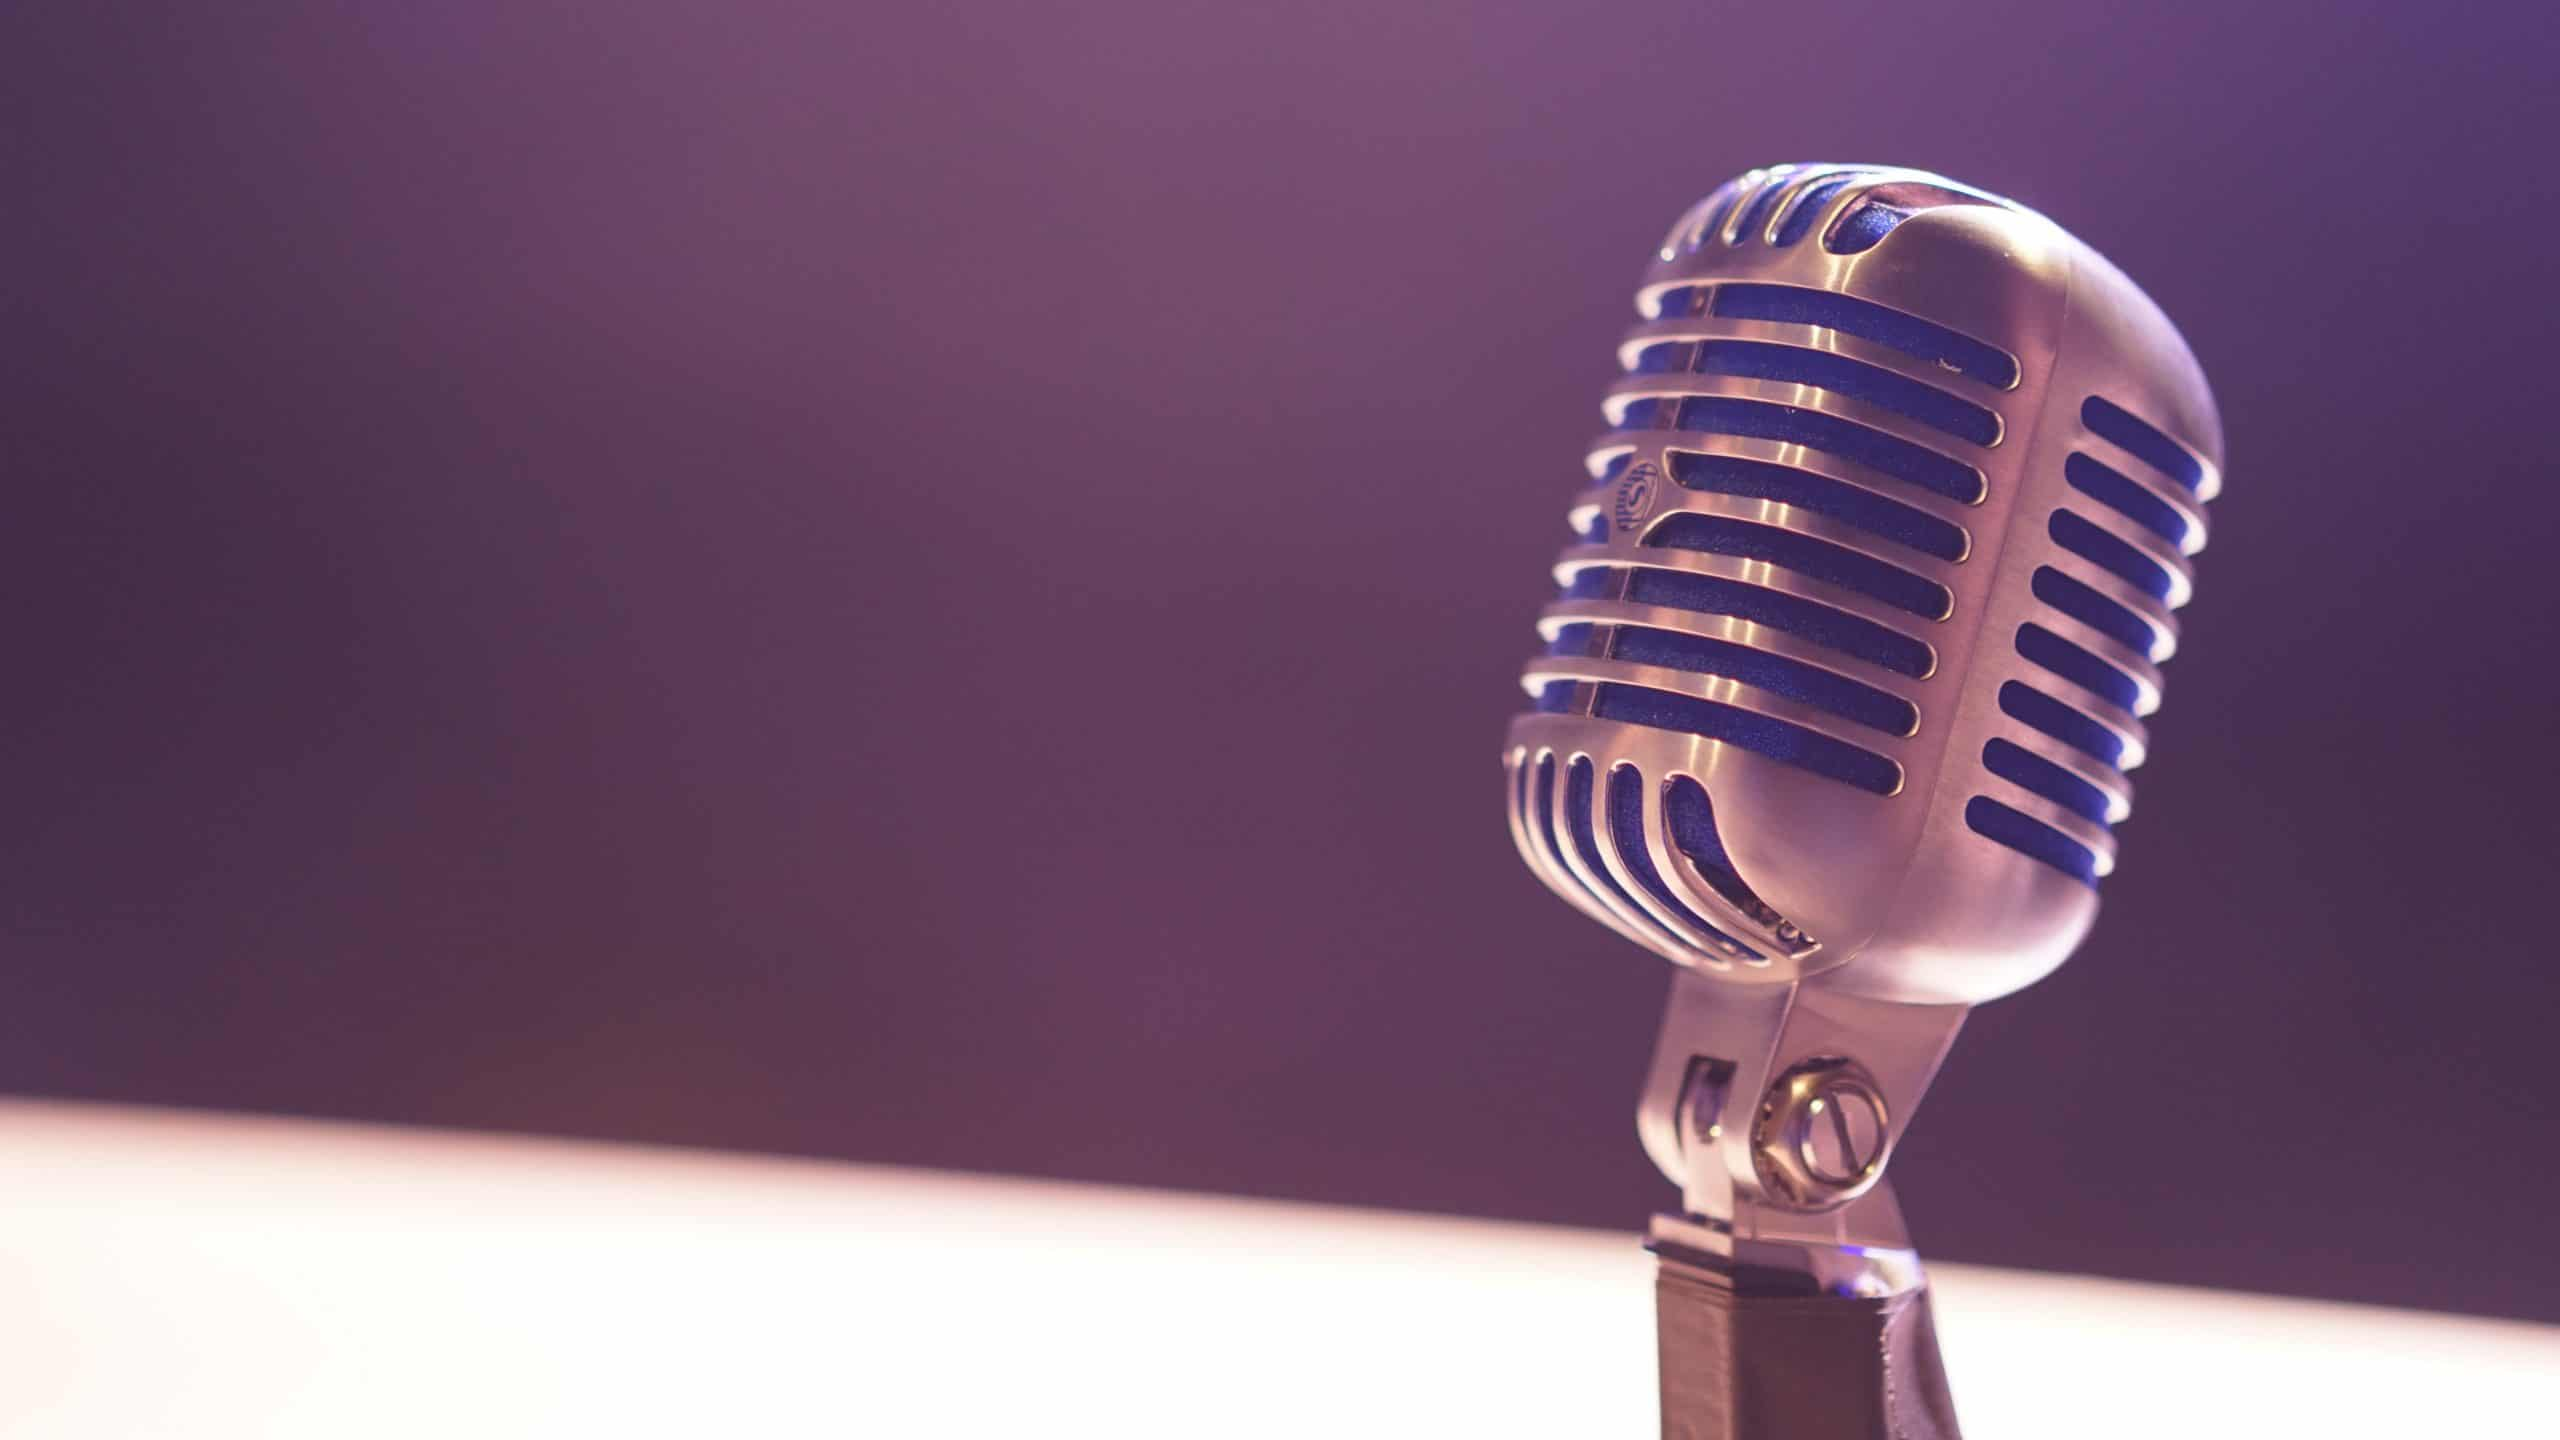 Podcast Microphone On Purple Background